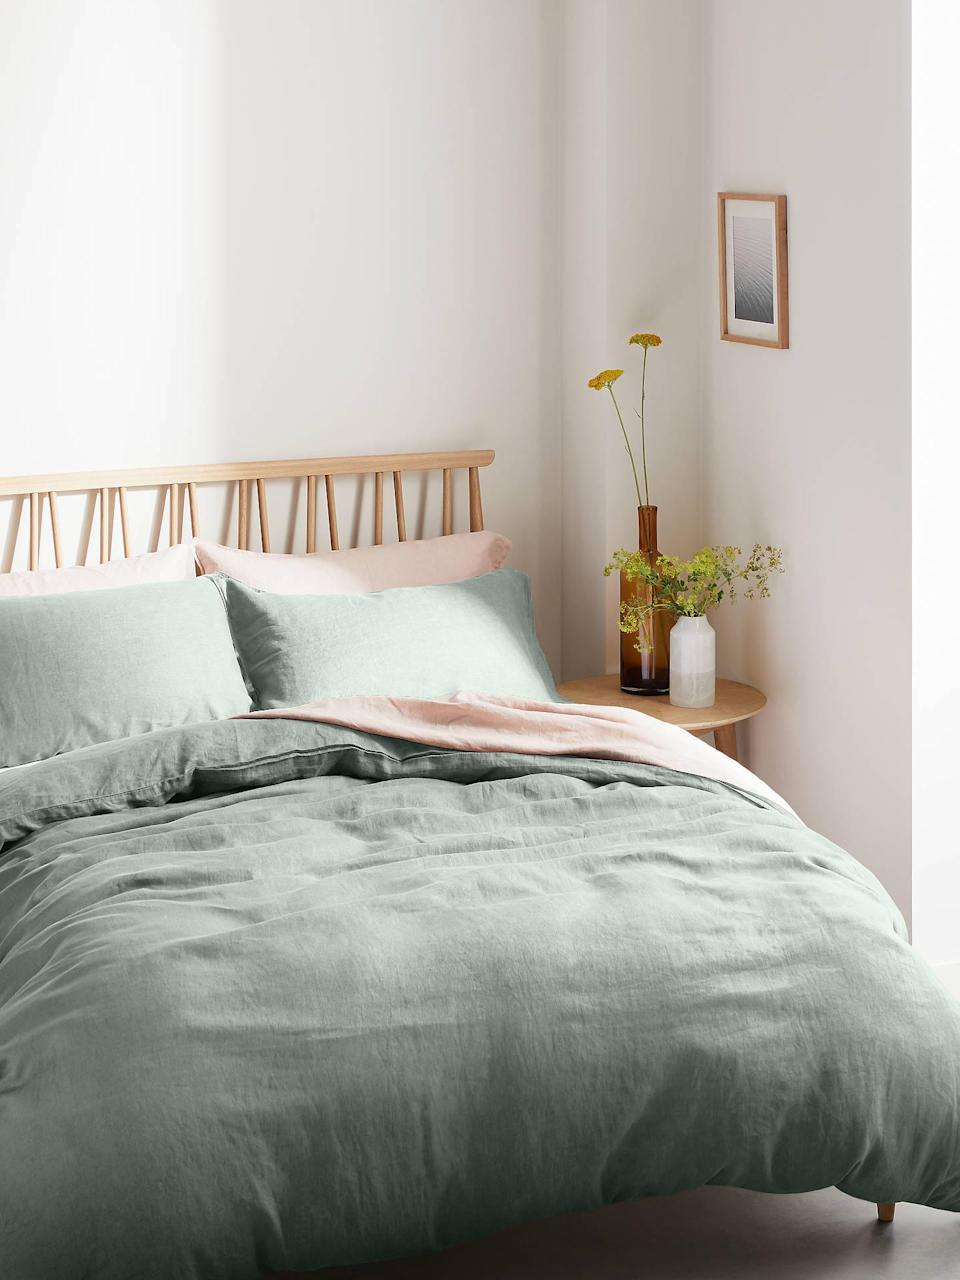 """In my dream life, my bedroom would be a sanctuary of relaxation and comfort instead of a messy place where I hide out and watch Netflix from bed. These moss green linen sheets feel like a step in the right direction, especially with the spring weather around the corner.<br><br><strong>John Lewis</strong> 100% Linen Bedding, Dusky Green, $, available at <a href=""""https://www.johnlewis.com/john-lewis-partners-100-linen-bedding/dusky-green/p5065964?size=double-duvet-cover"""" rel=""""nofollow noopener"""" target=""""_blank"""" data-ylk=""""slk:John Lewis"""" class=""""link rapid-noclick-resp"""">John Lewis</a>"""